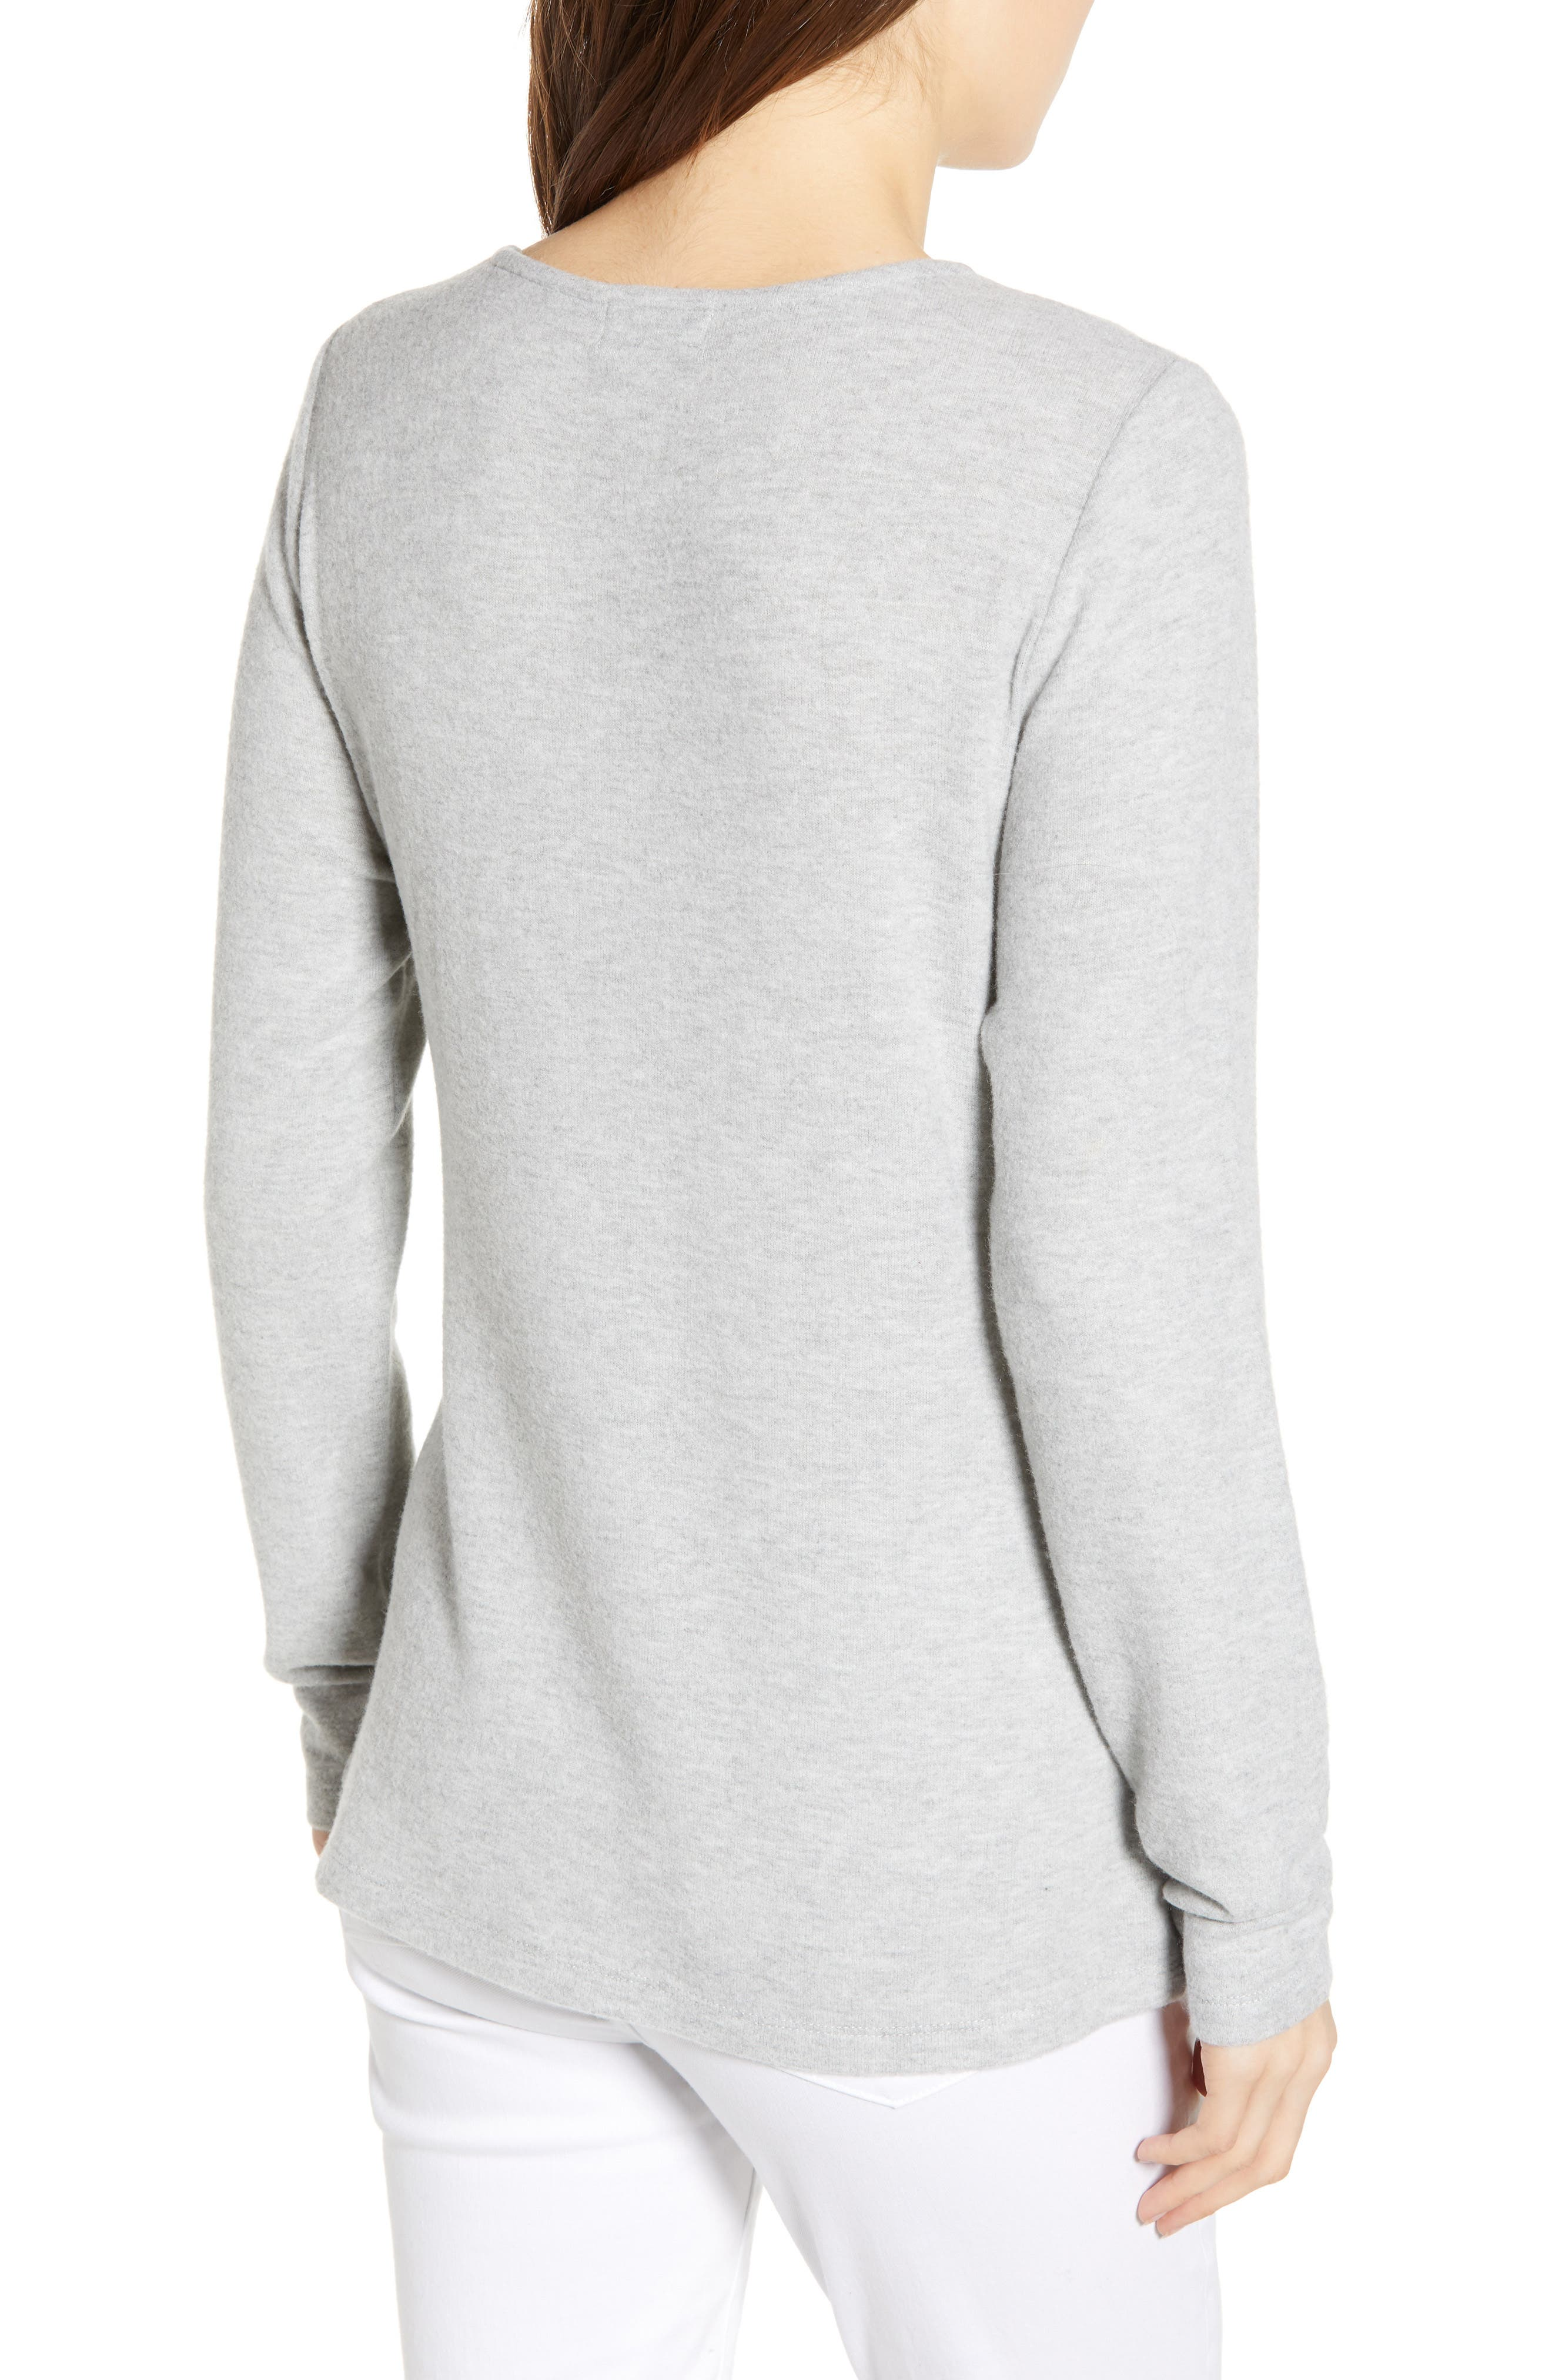 SOCIALITE, Tie Front Top, Alternate thumbnail 2, color, HEATHER GREY